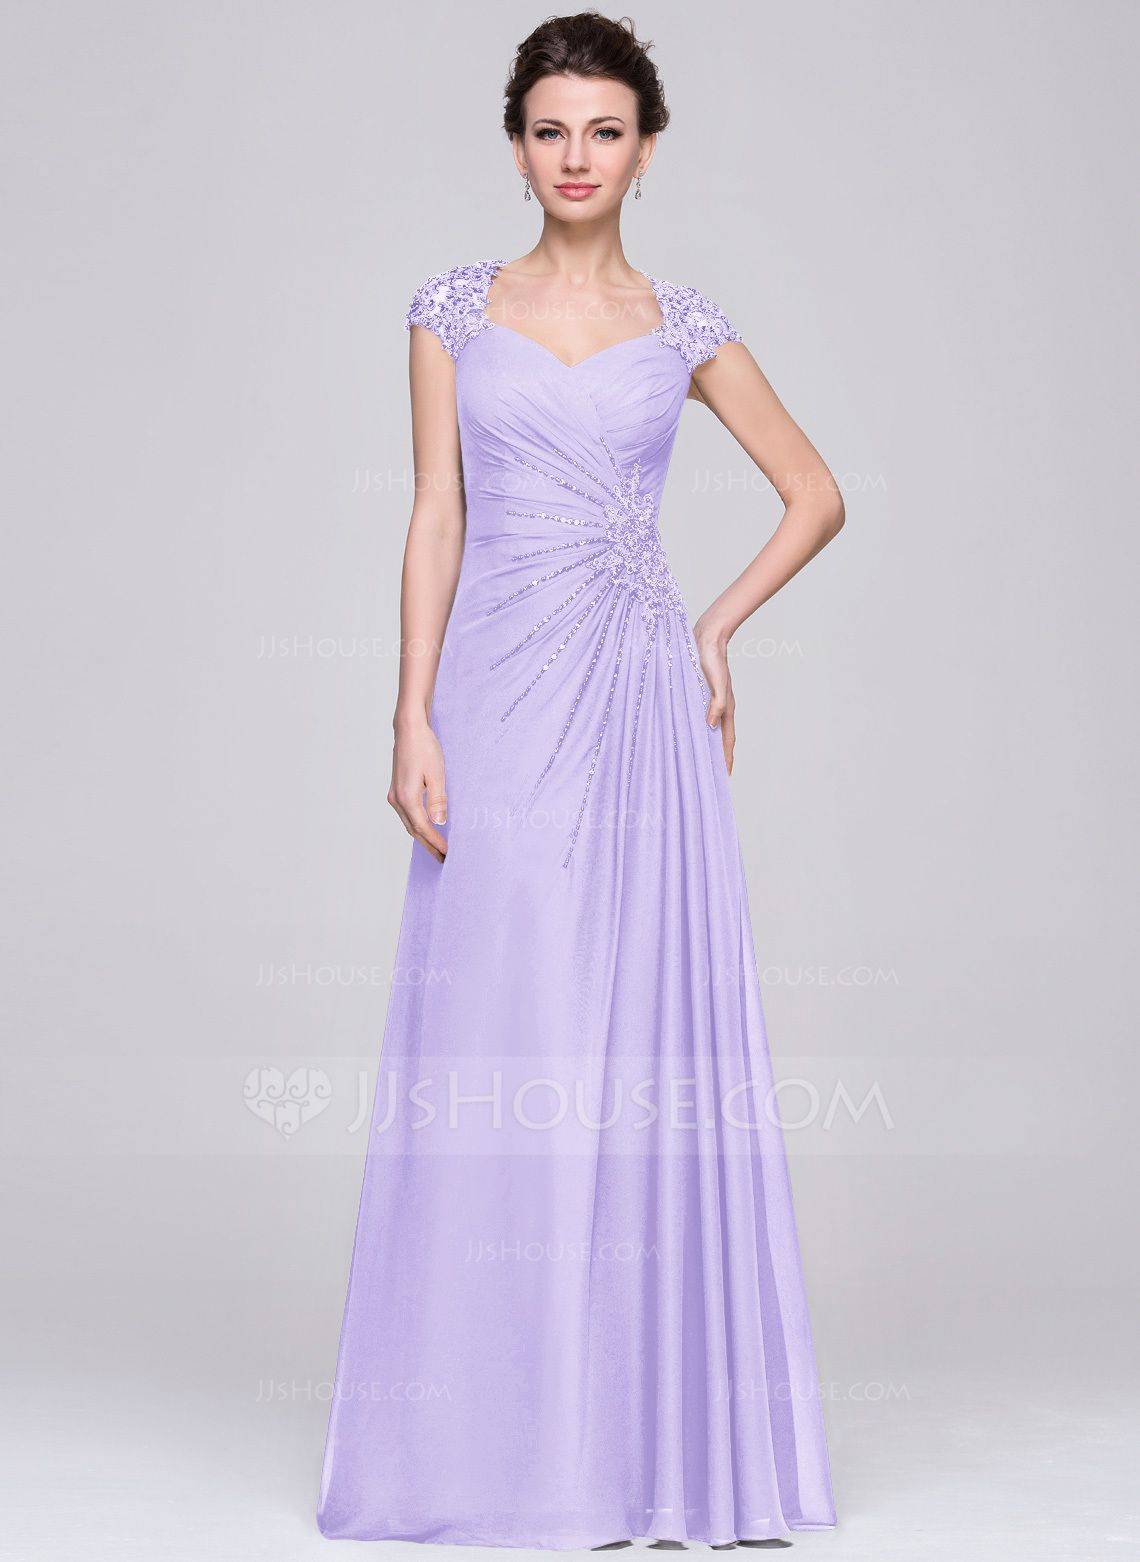 96045ed64cb5 A-Line/Princess Sweetheart Floor-Length Chiffon Mother of the Bride Dress  With Ruffle Lace Beading Sequins (008056888) - Mother of the Bride Dresses  - ...